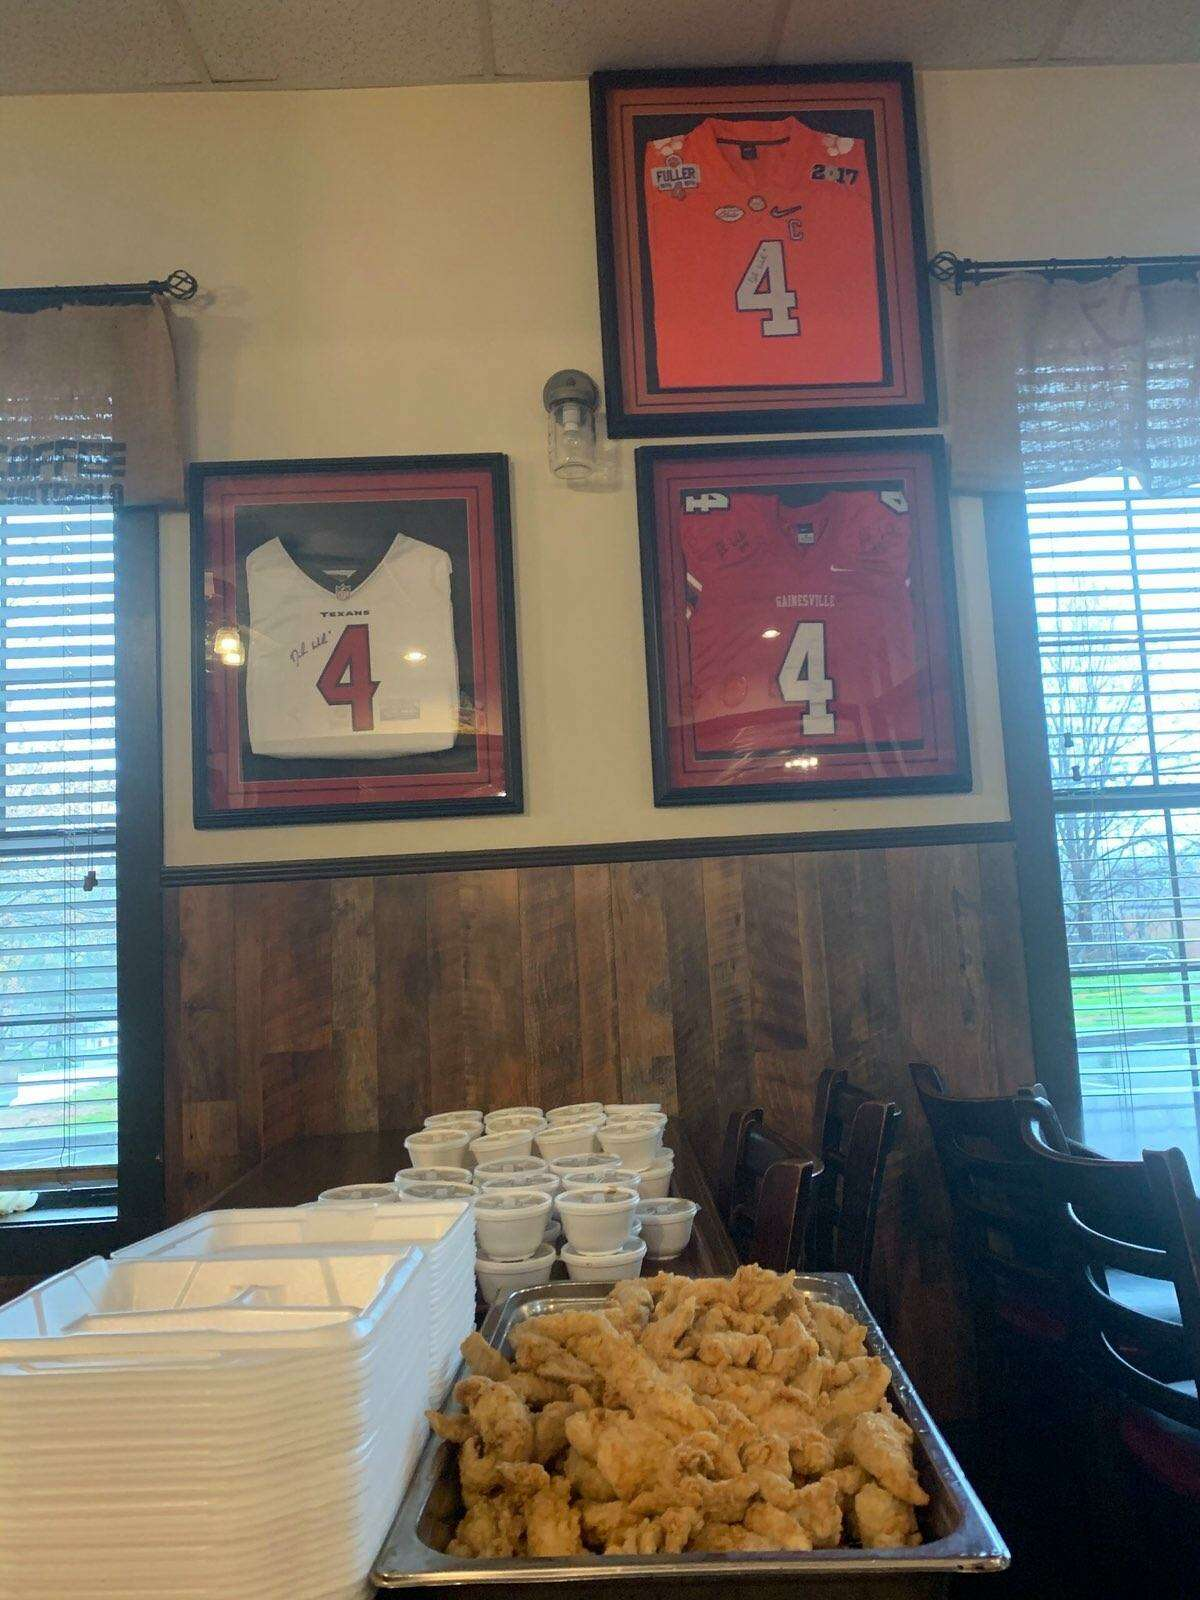 Houston Texans quarterback Deshaun Watson teamed up with his hometown pastor Michael Thurmond and his favorite restaurant in his hometown of Gainesville Ga., Longstreet Cafe, to provide meals to first responders on the front lines of the coronavirus pandemic.